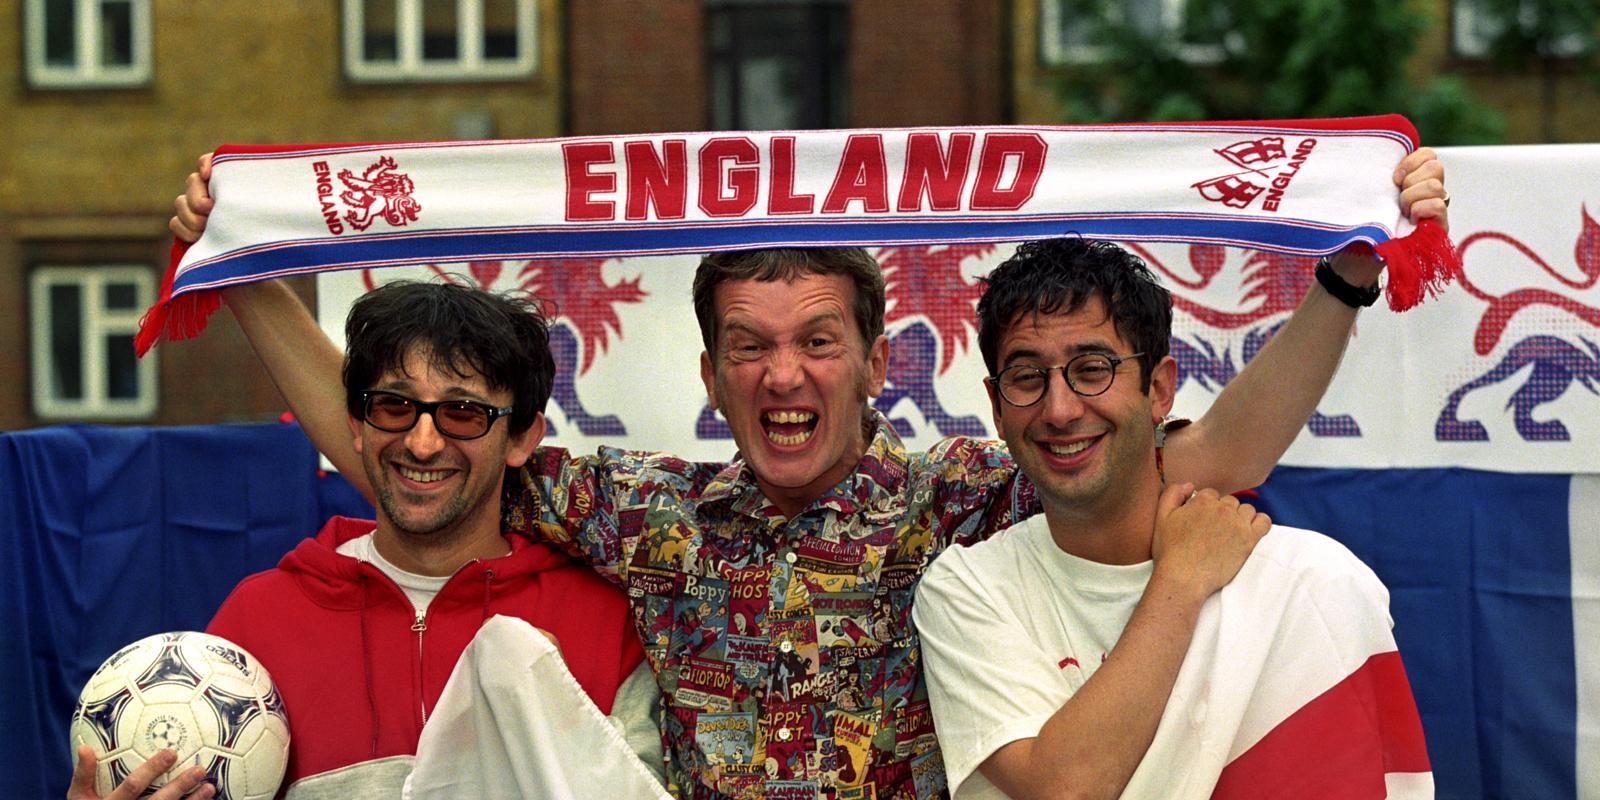 Frank Skinner and the Three Lions gang.